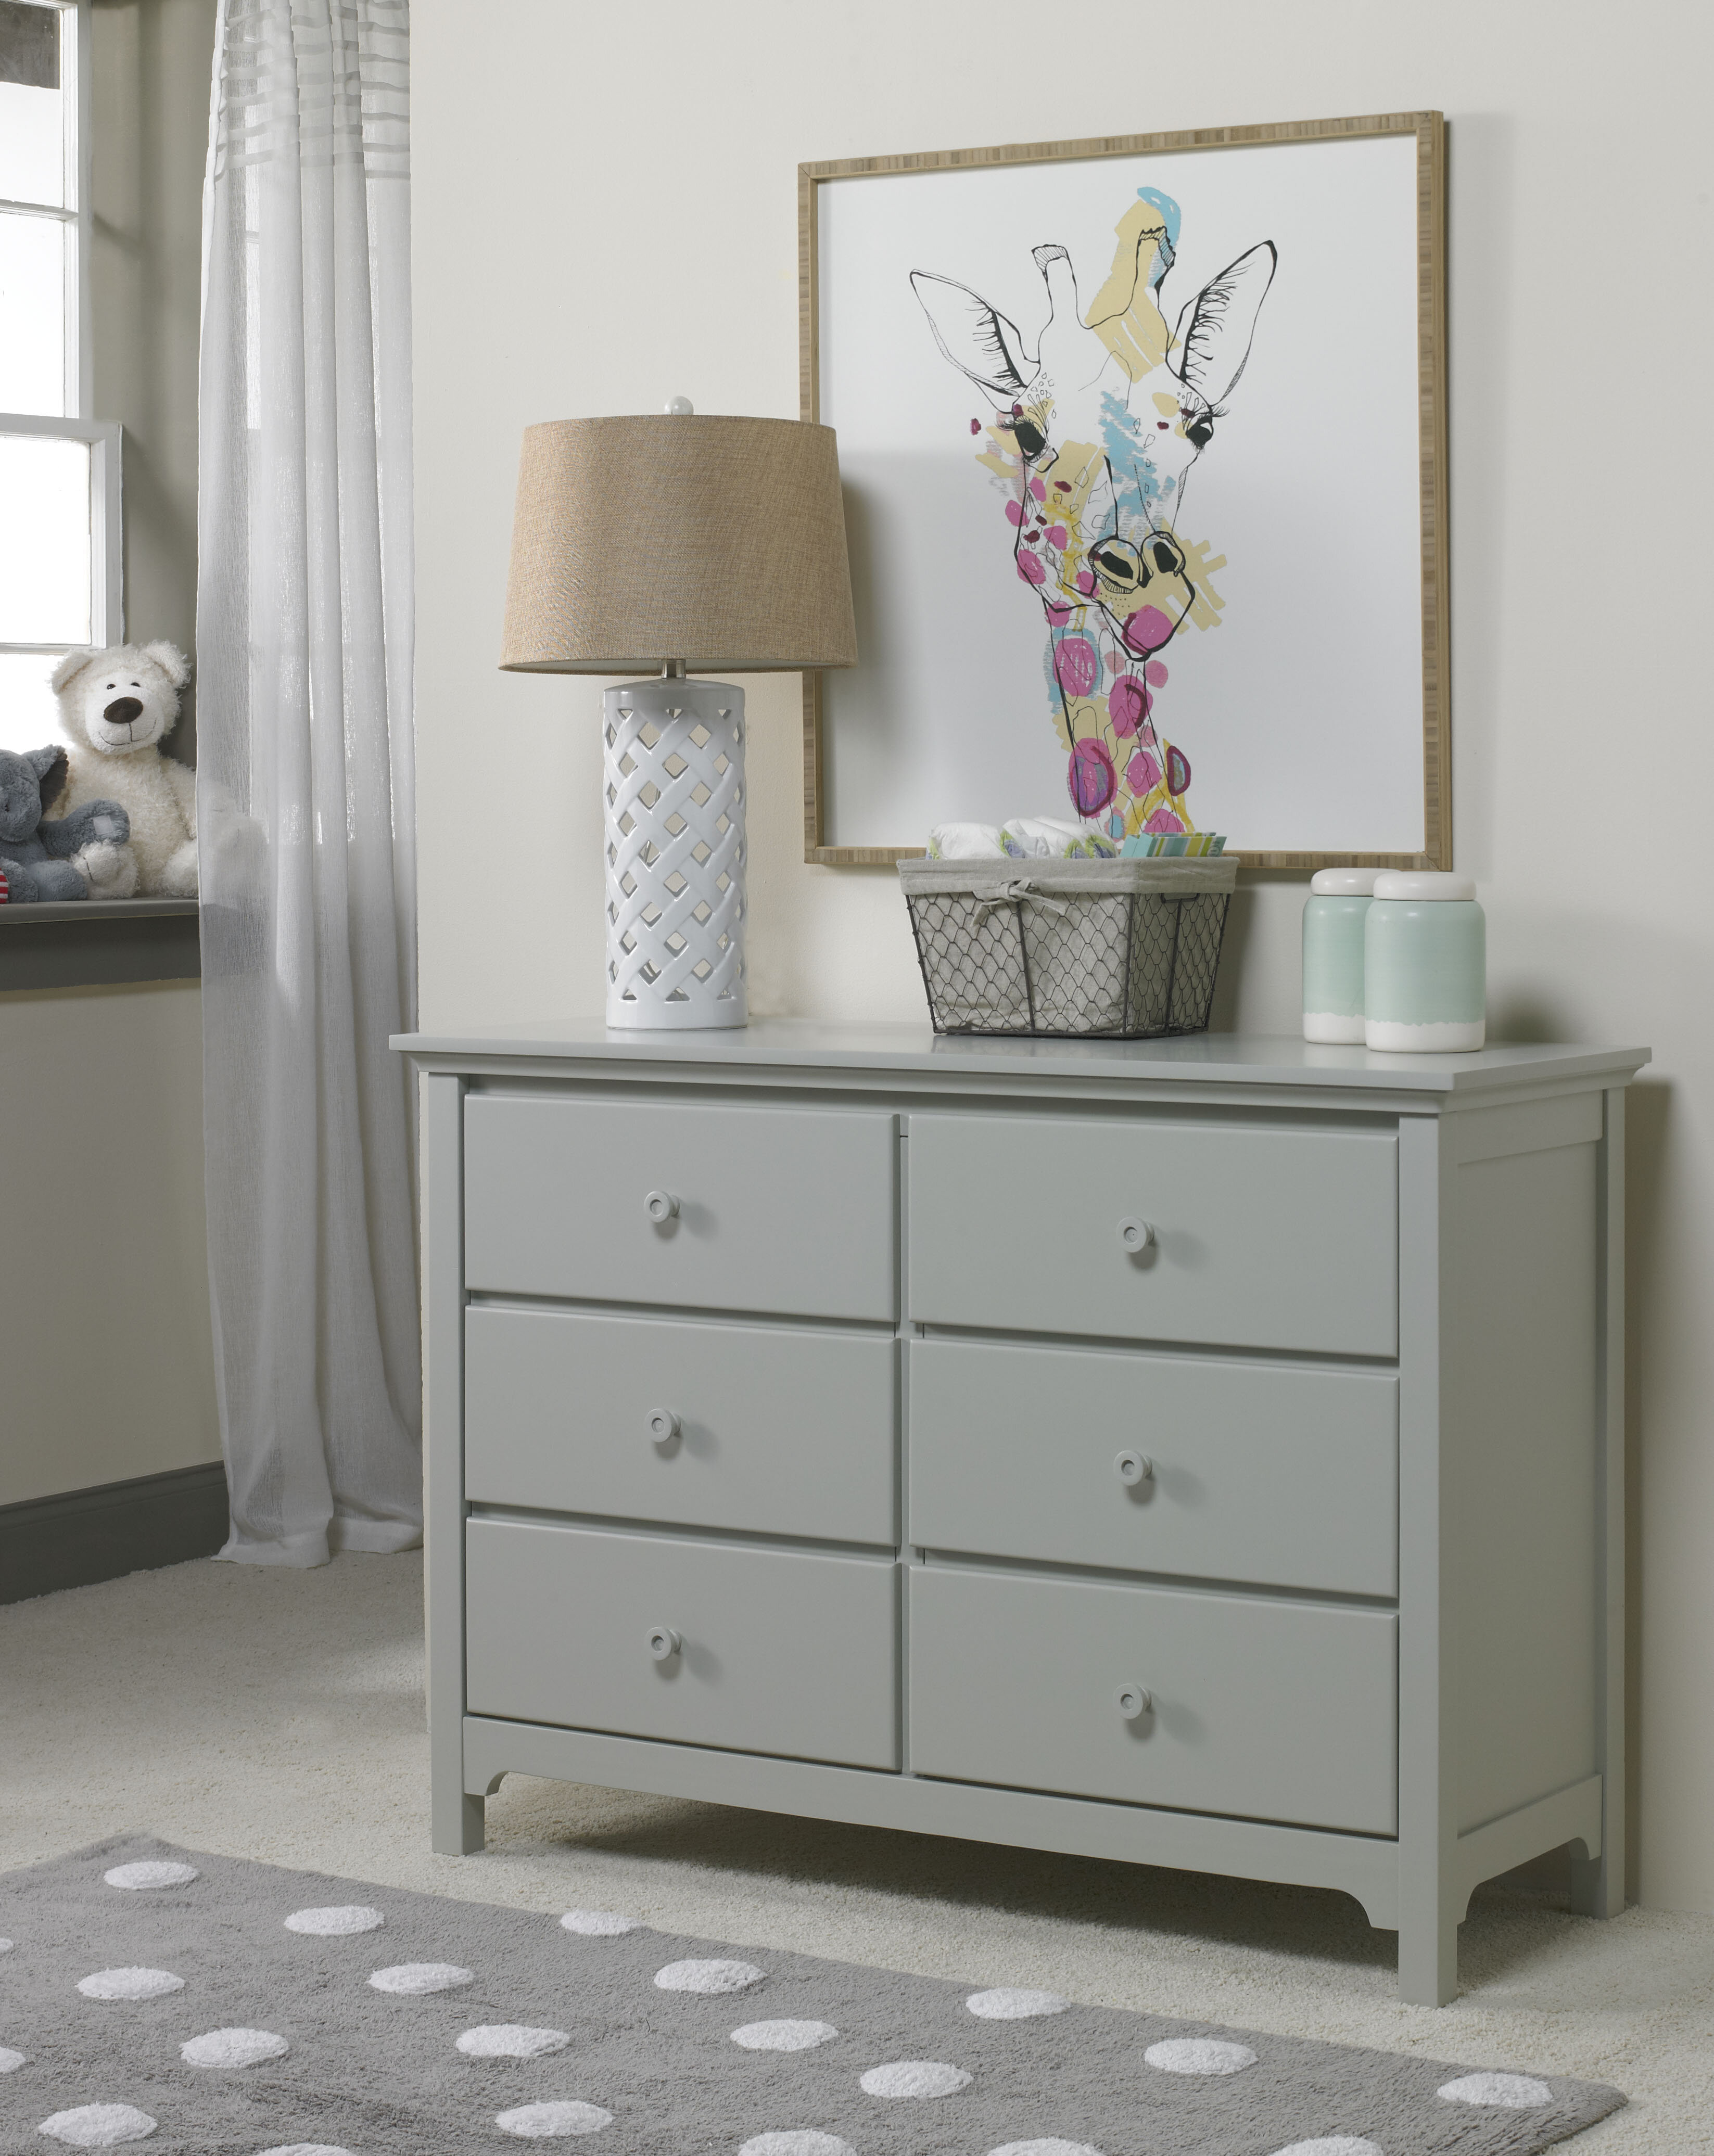 changing overstock drawer kalani with free changer garden dresser product perse removable tray home today davinci shipping